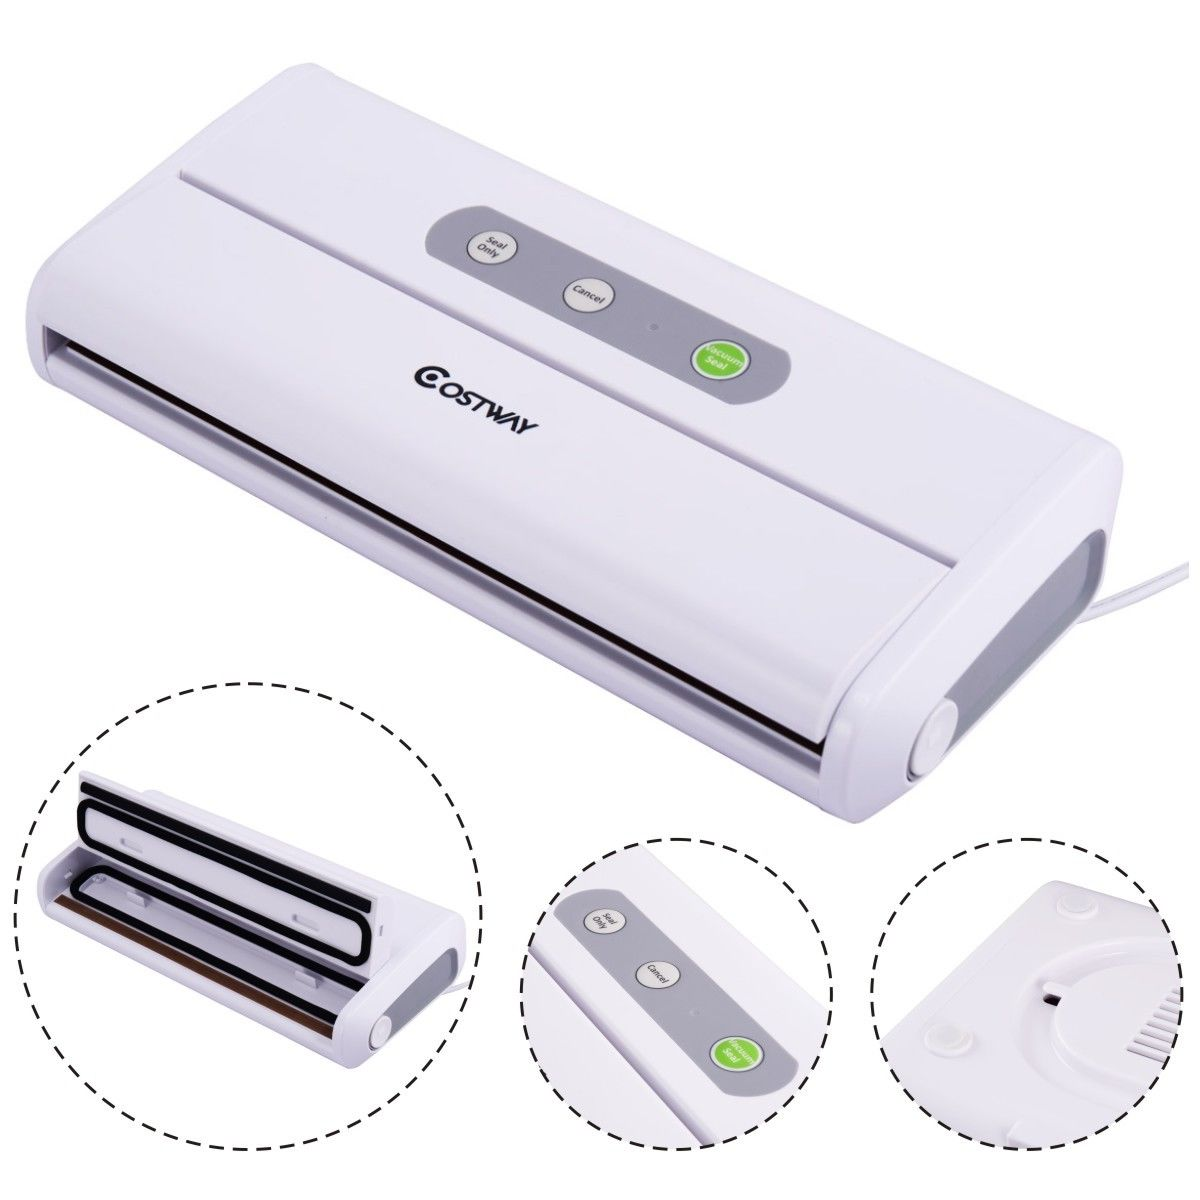 Costway Electric Food Packing Vacuum Sealer Machine Home Foodsaver Storage Meal Sealing by Costway